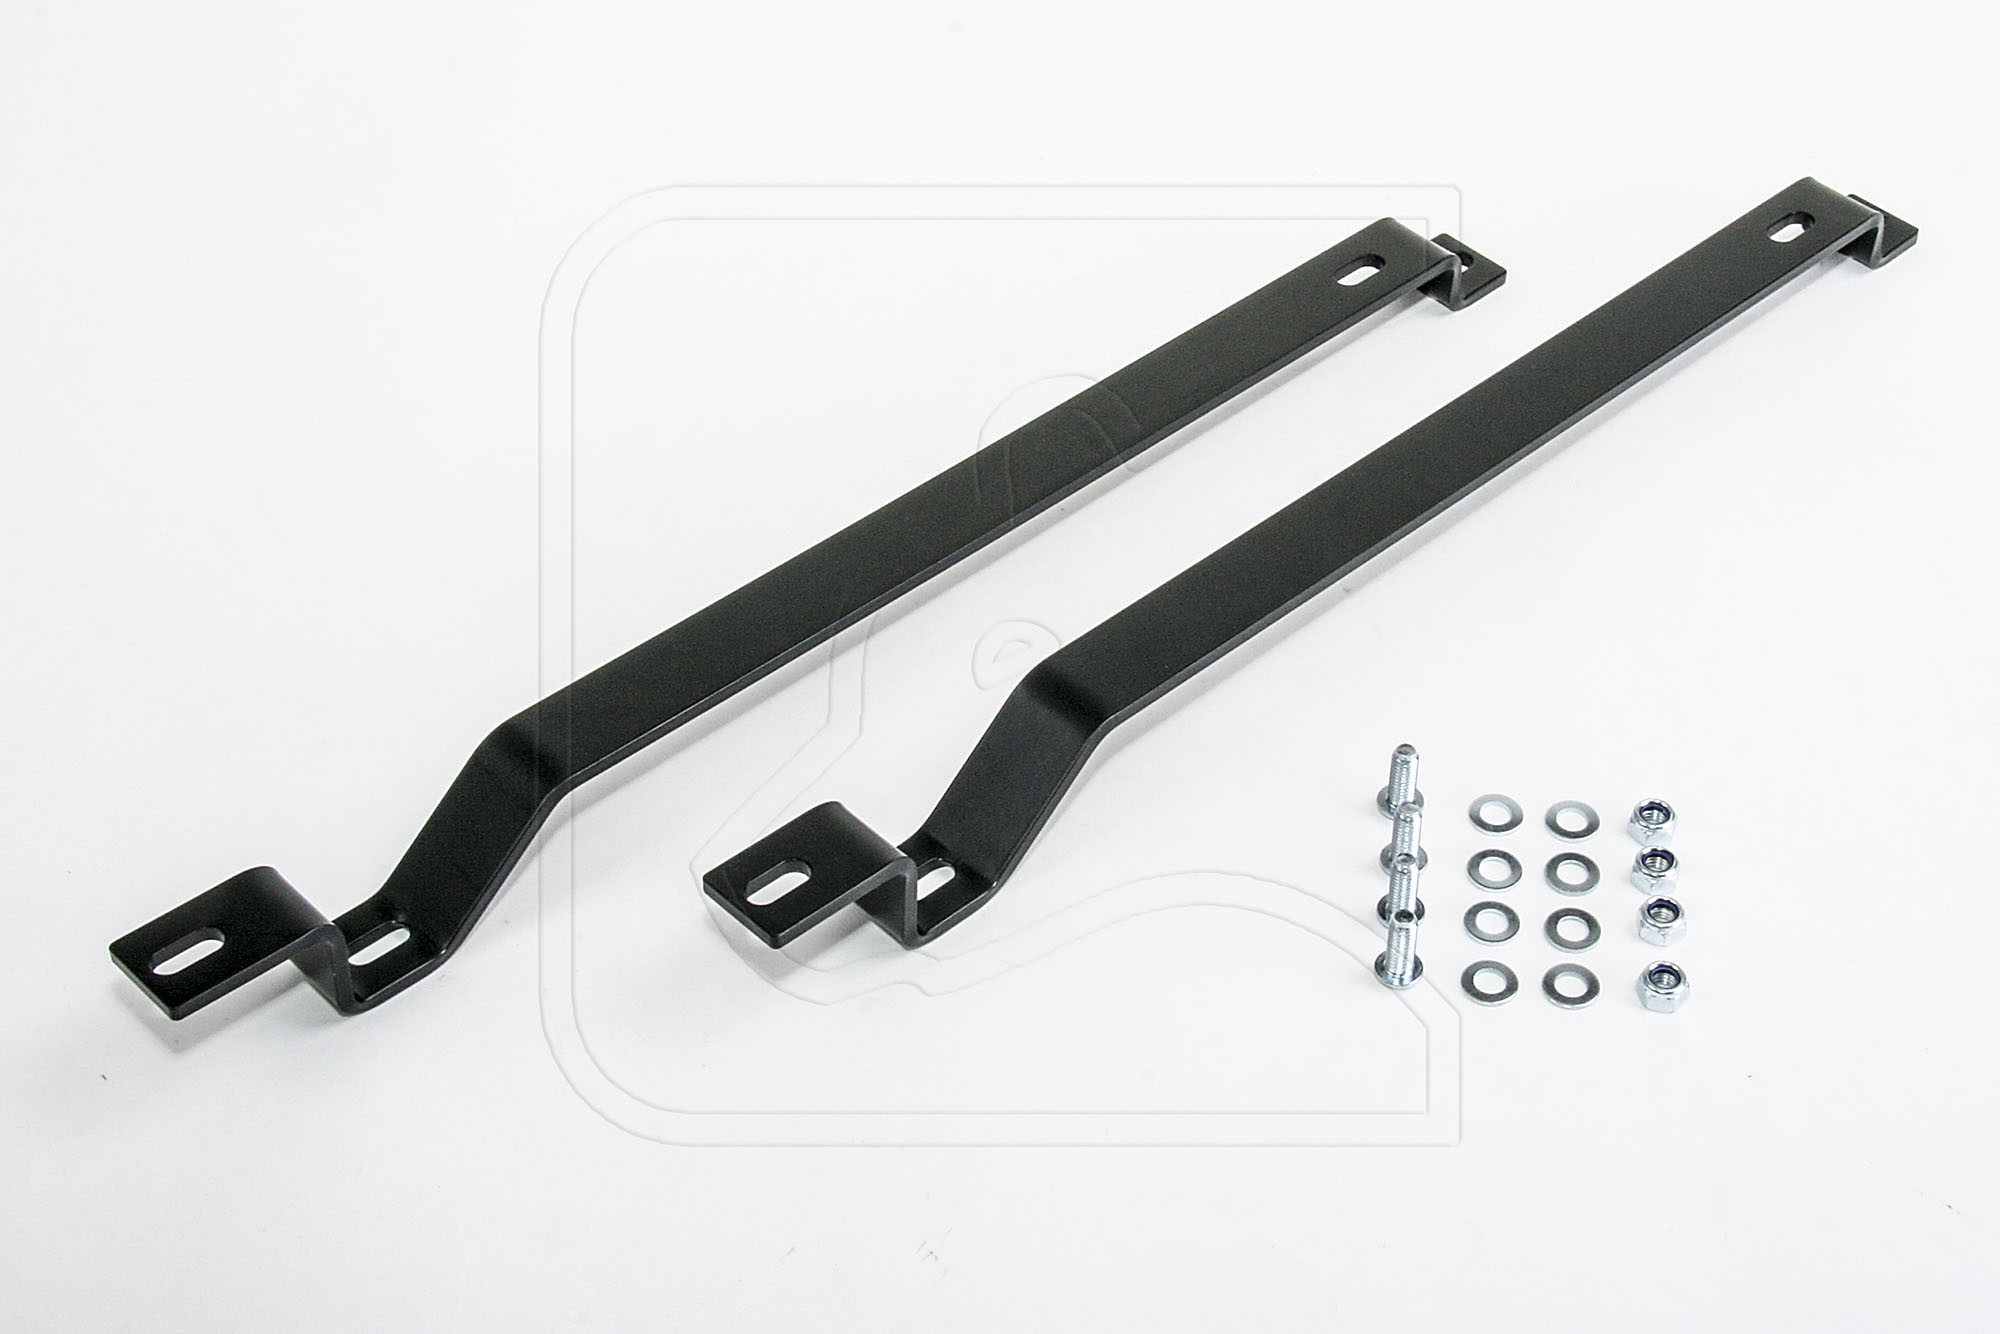 Seat Risers / Rail Extensions (stainless steel, powdercoated black)